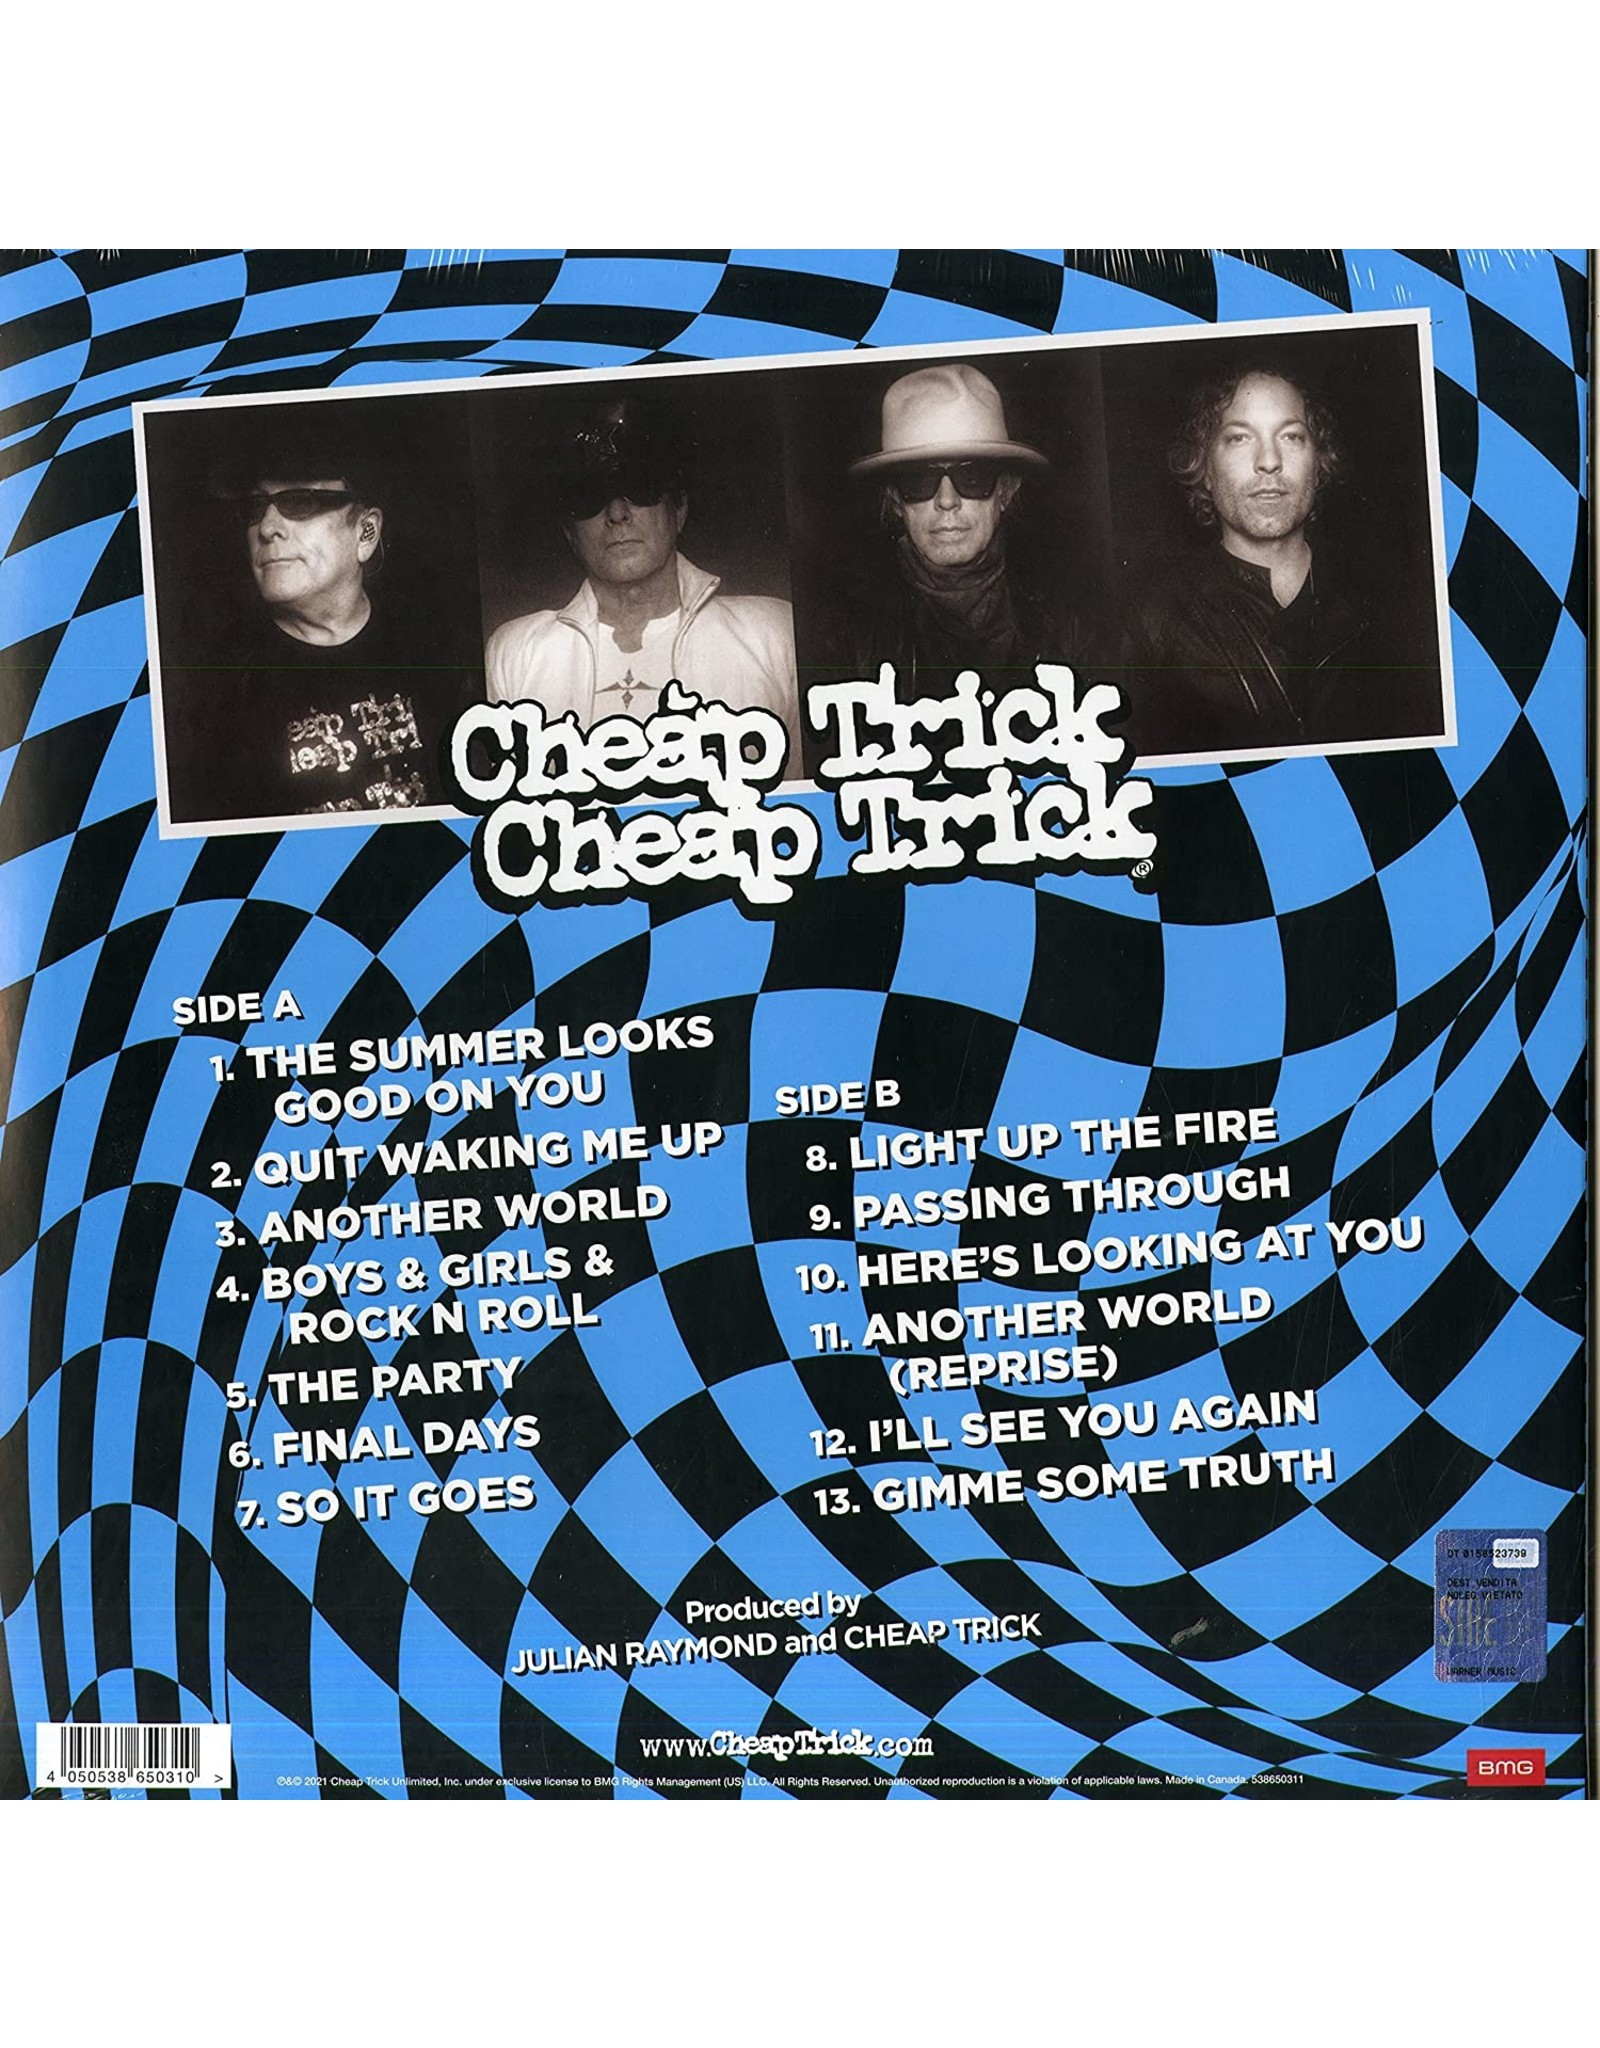 Cheap Trick - In Another World (Exclusive Blue / White Splatter Vinyl)